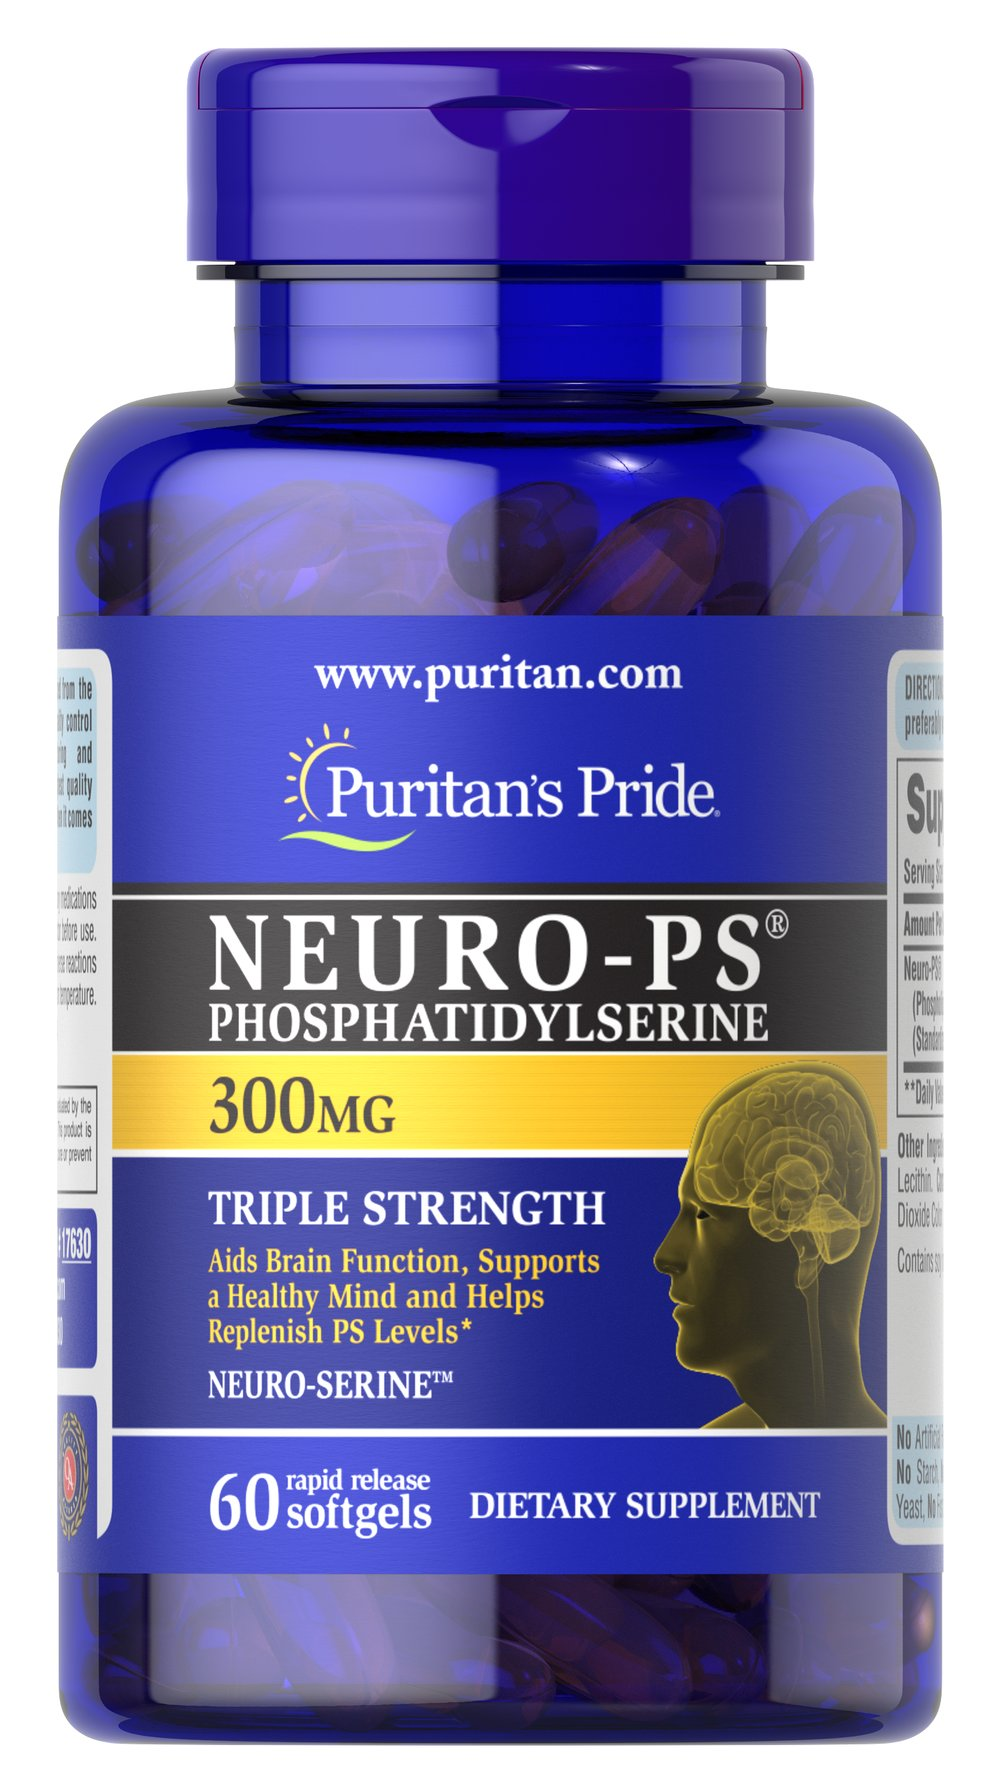 Neuro-PS 300 mg (Phosphatidylserine)